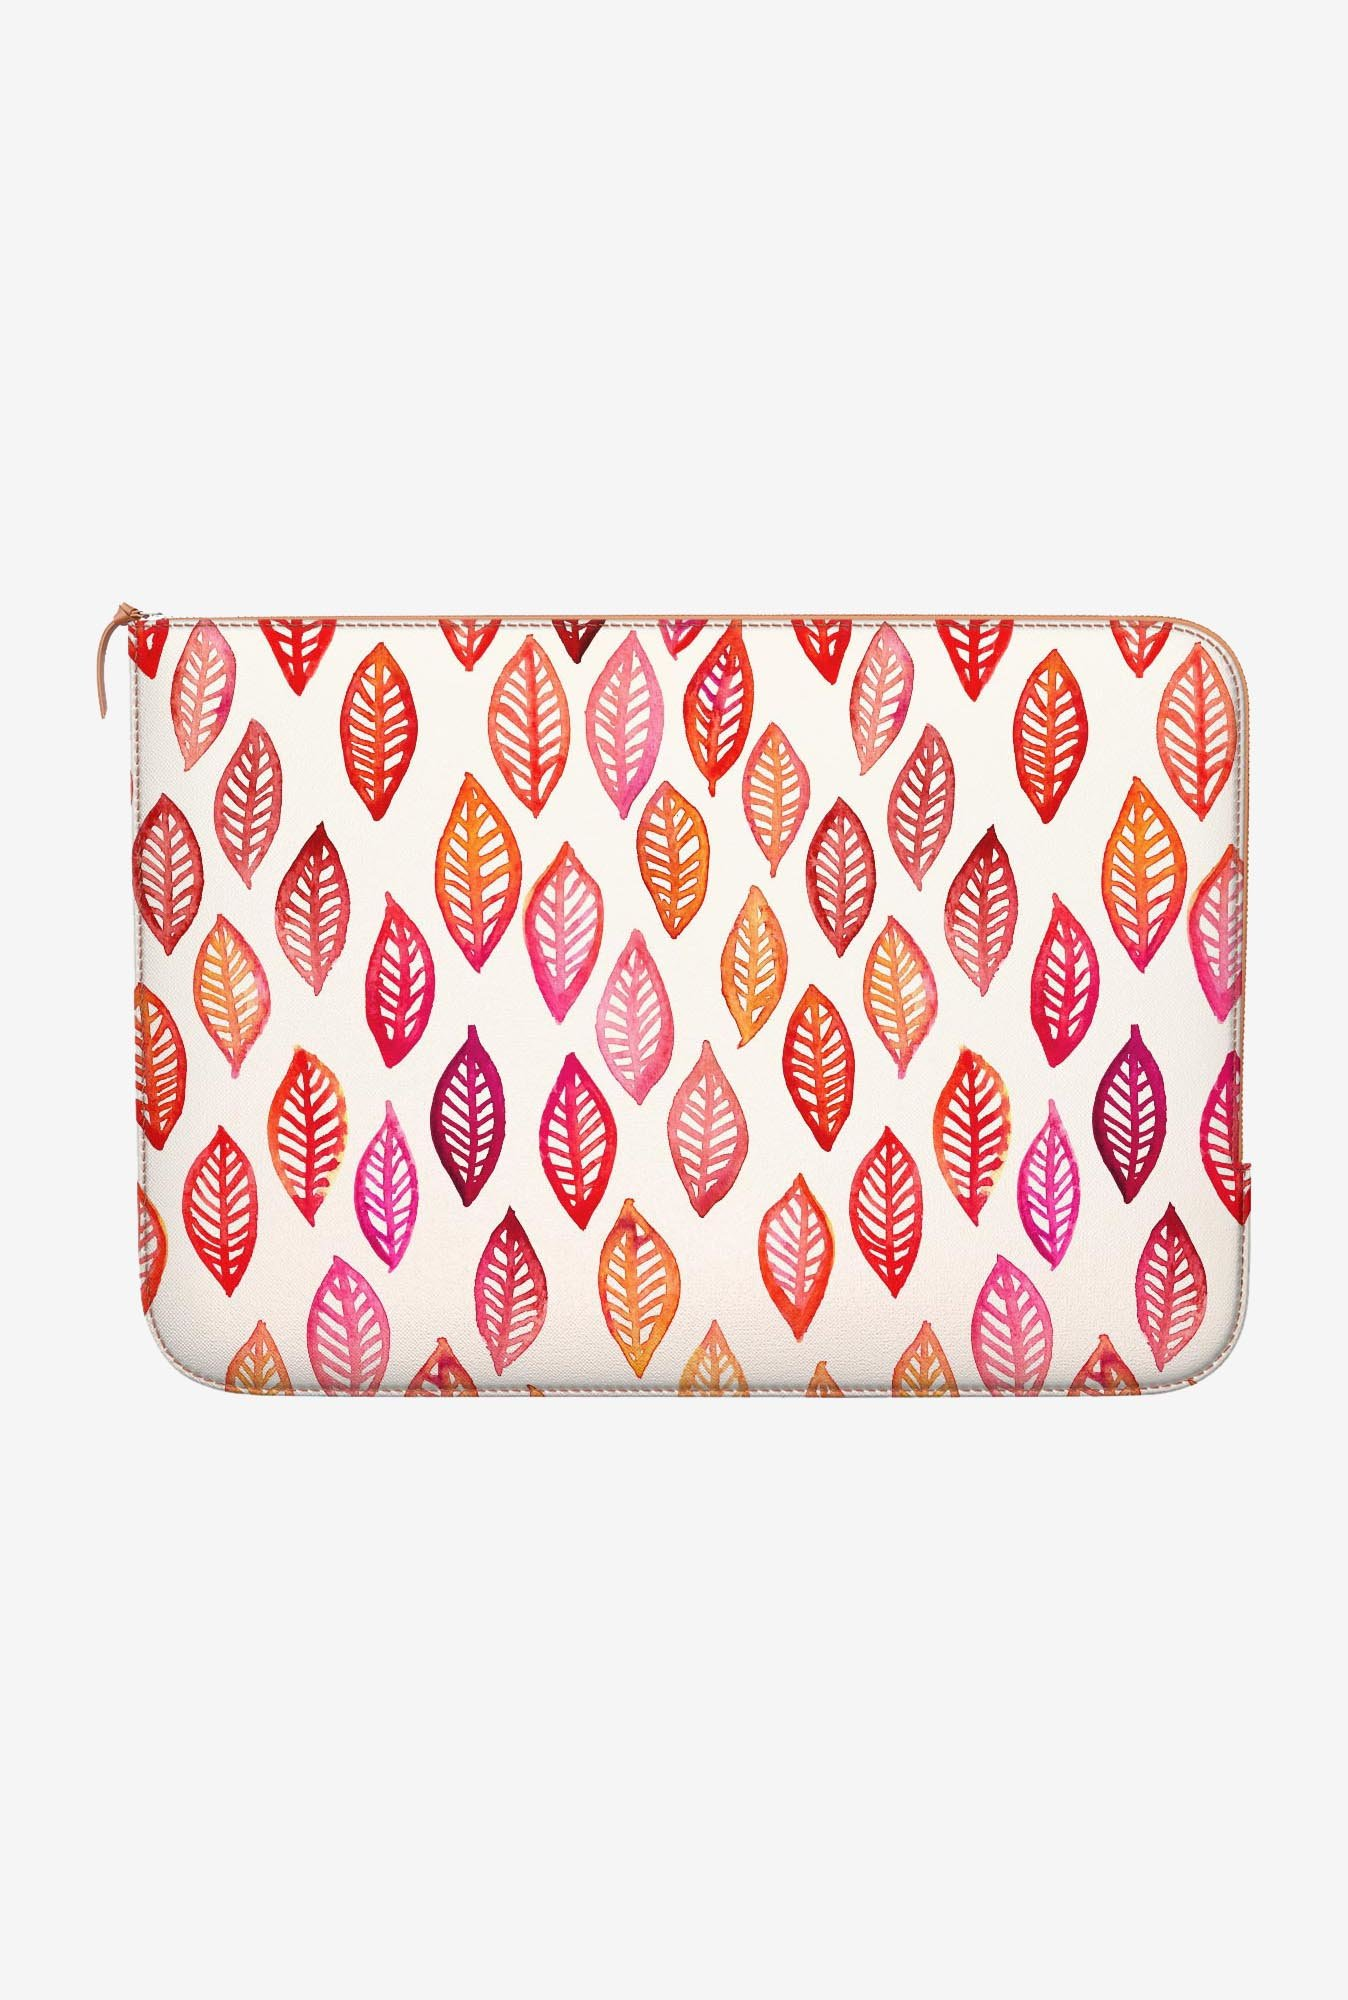 DailyObjects Autumn Leaves MacBook 12 Zippered Sleeve